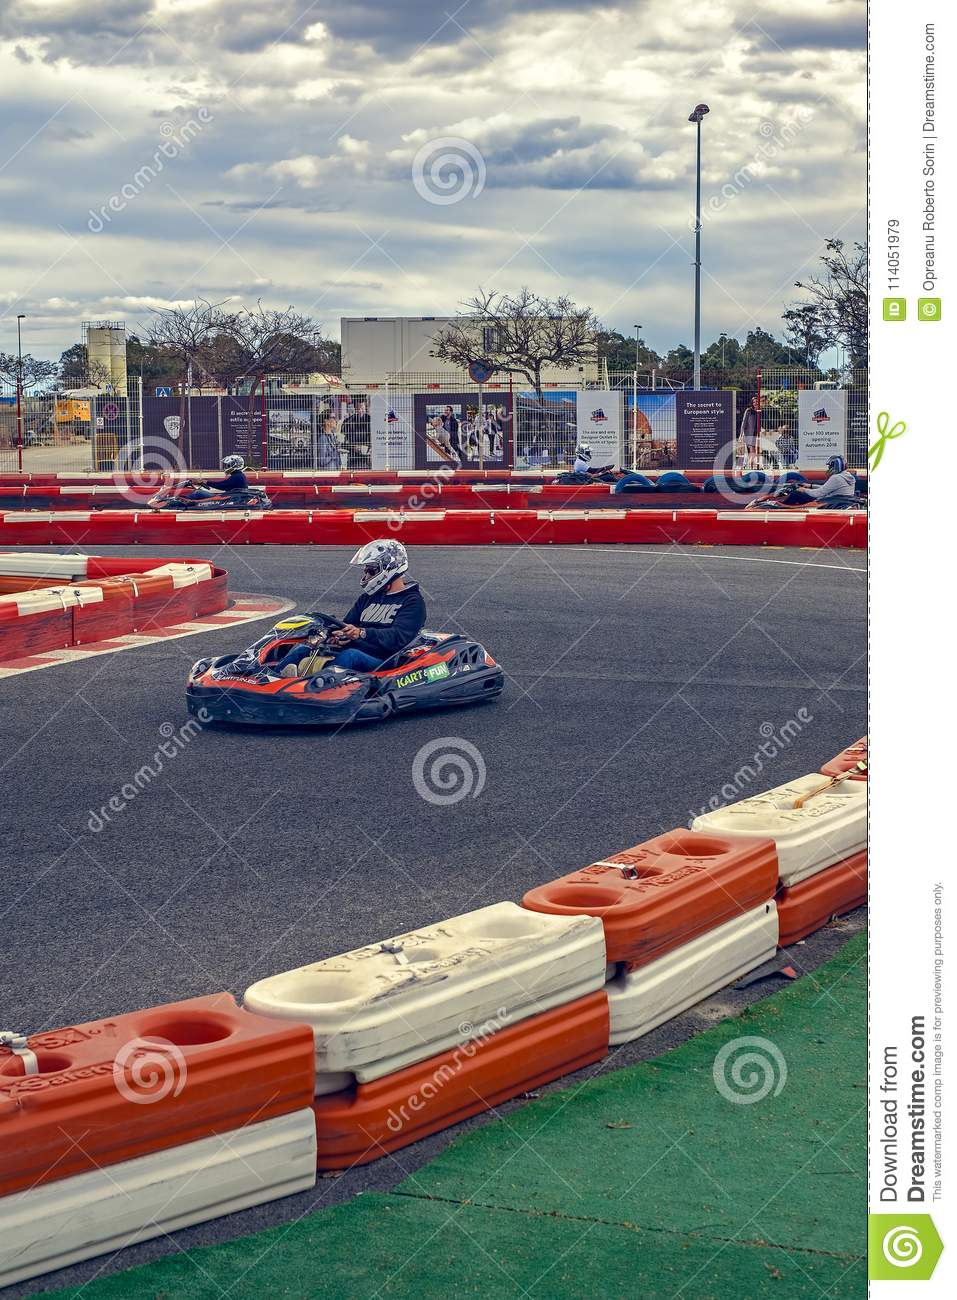 Karting racer in action